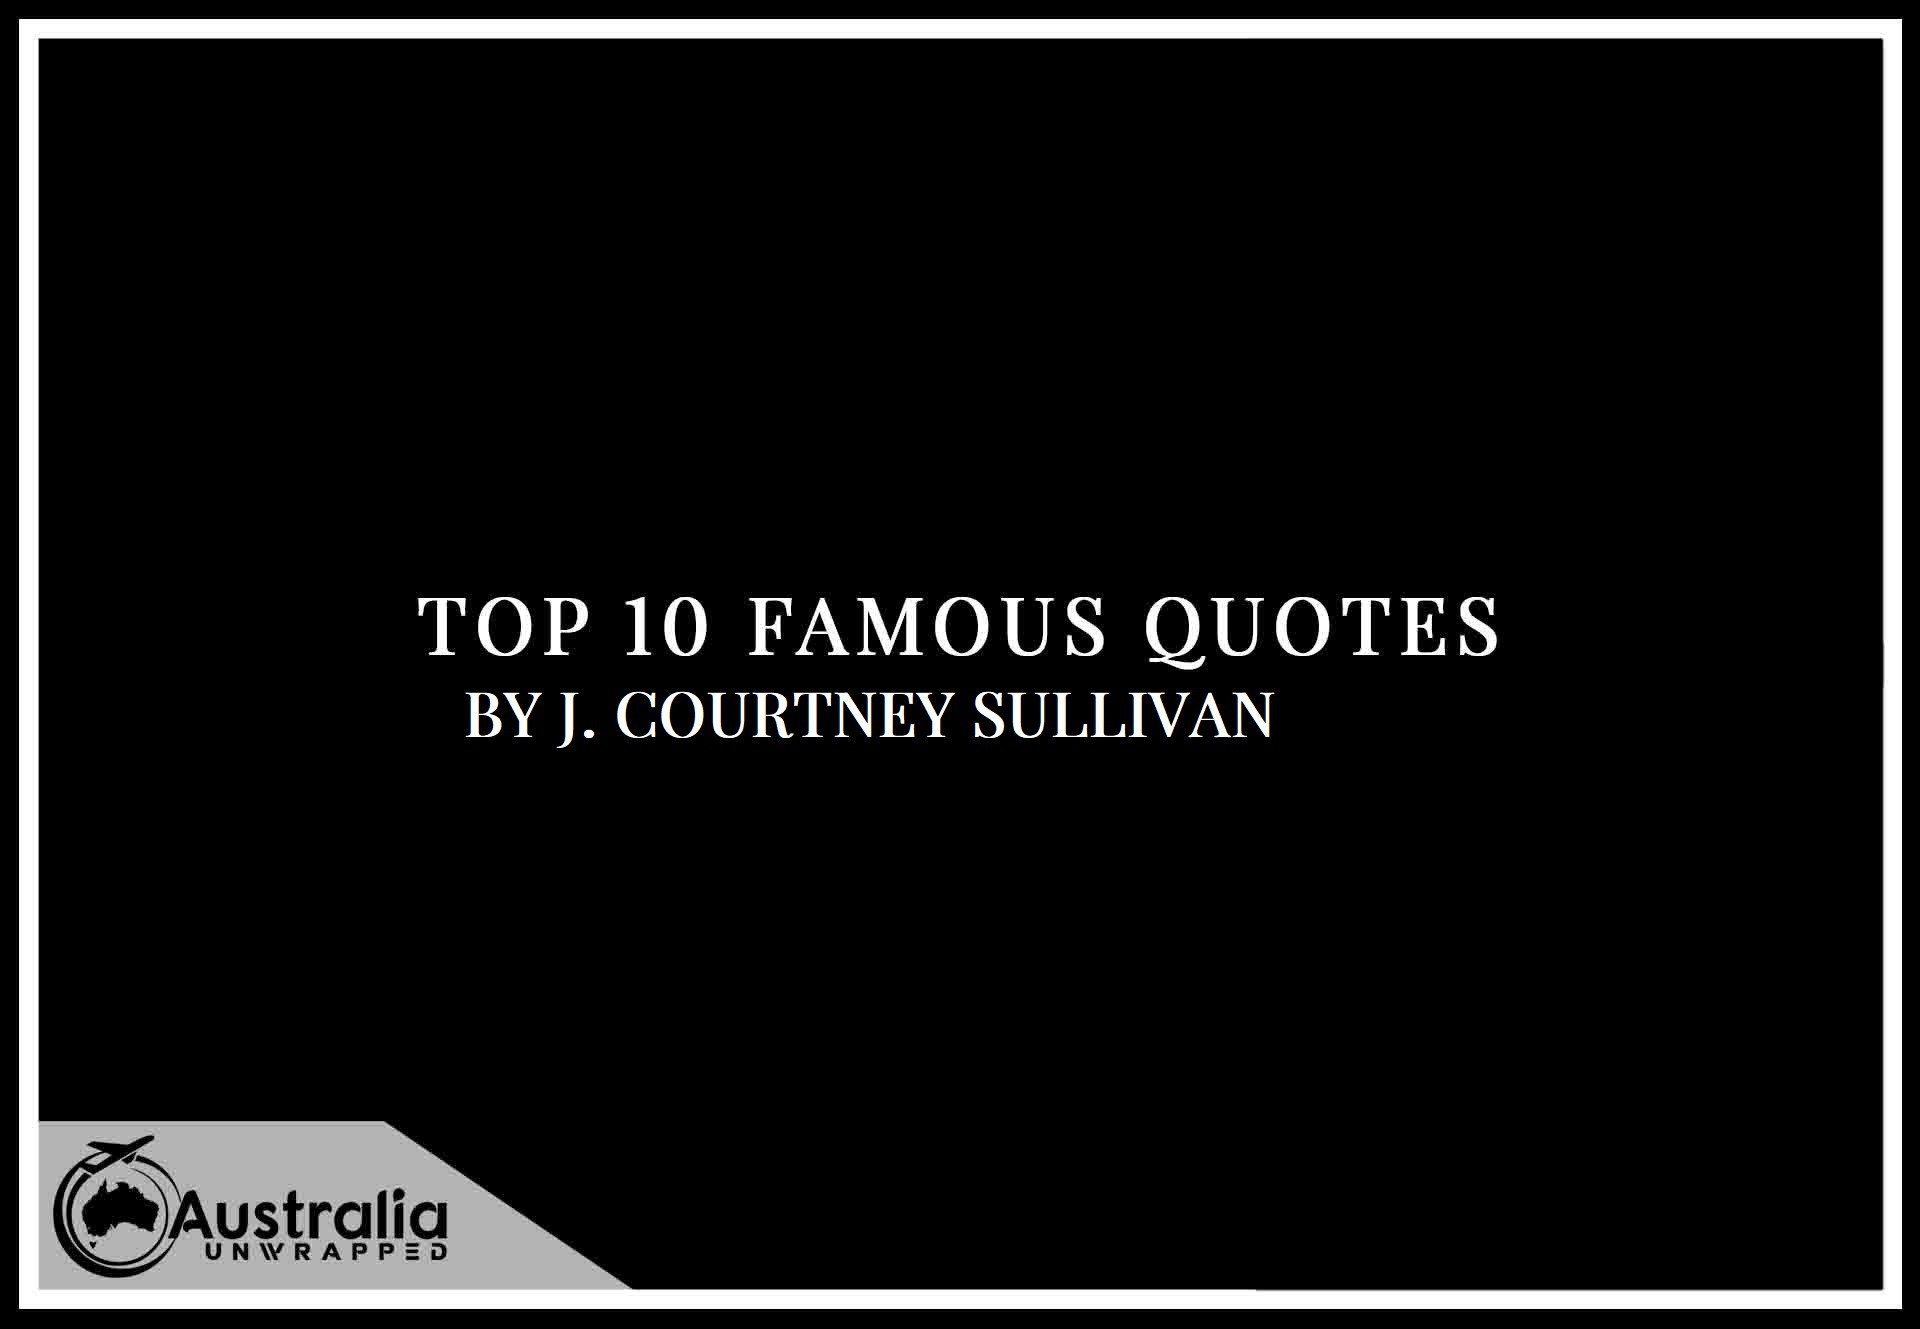 Top 10 Famous Quotes by Author J. Courtney Sullivan